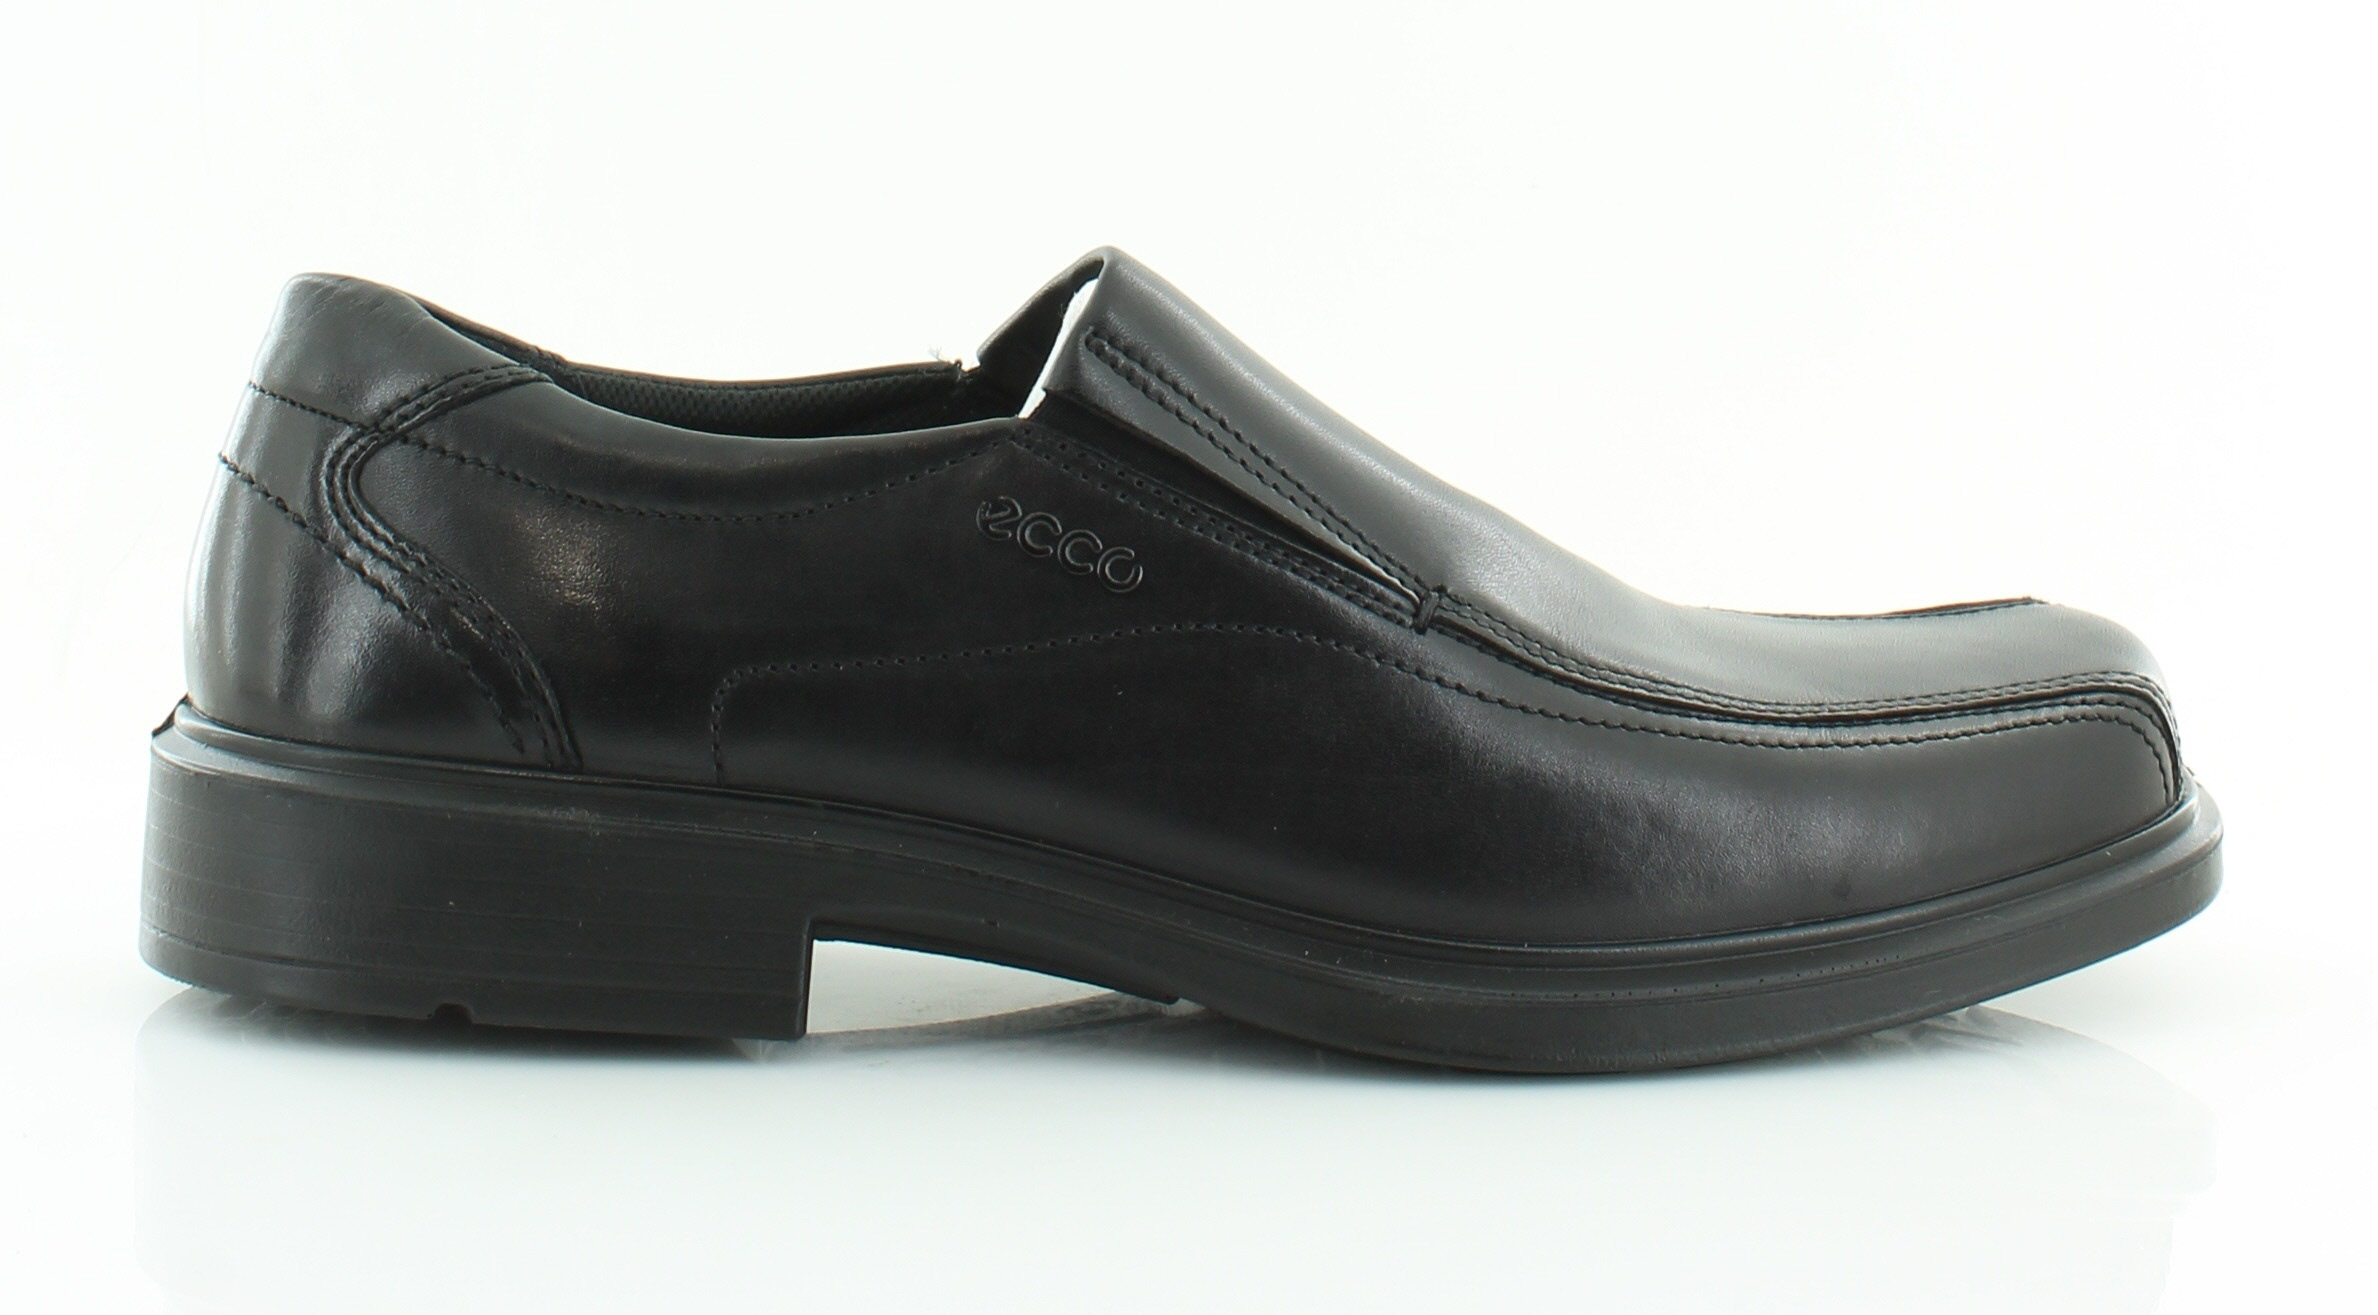 ecco new helsinki black mens shoes size 11 5 m dress